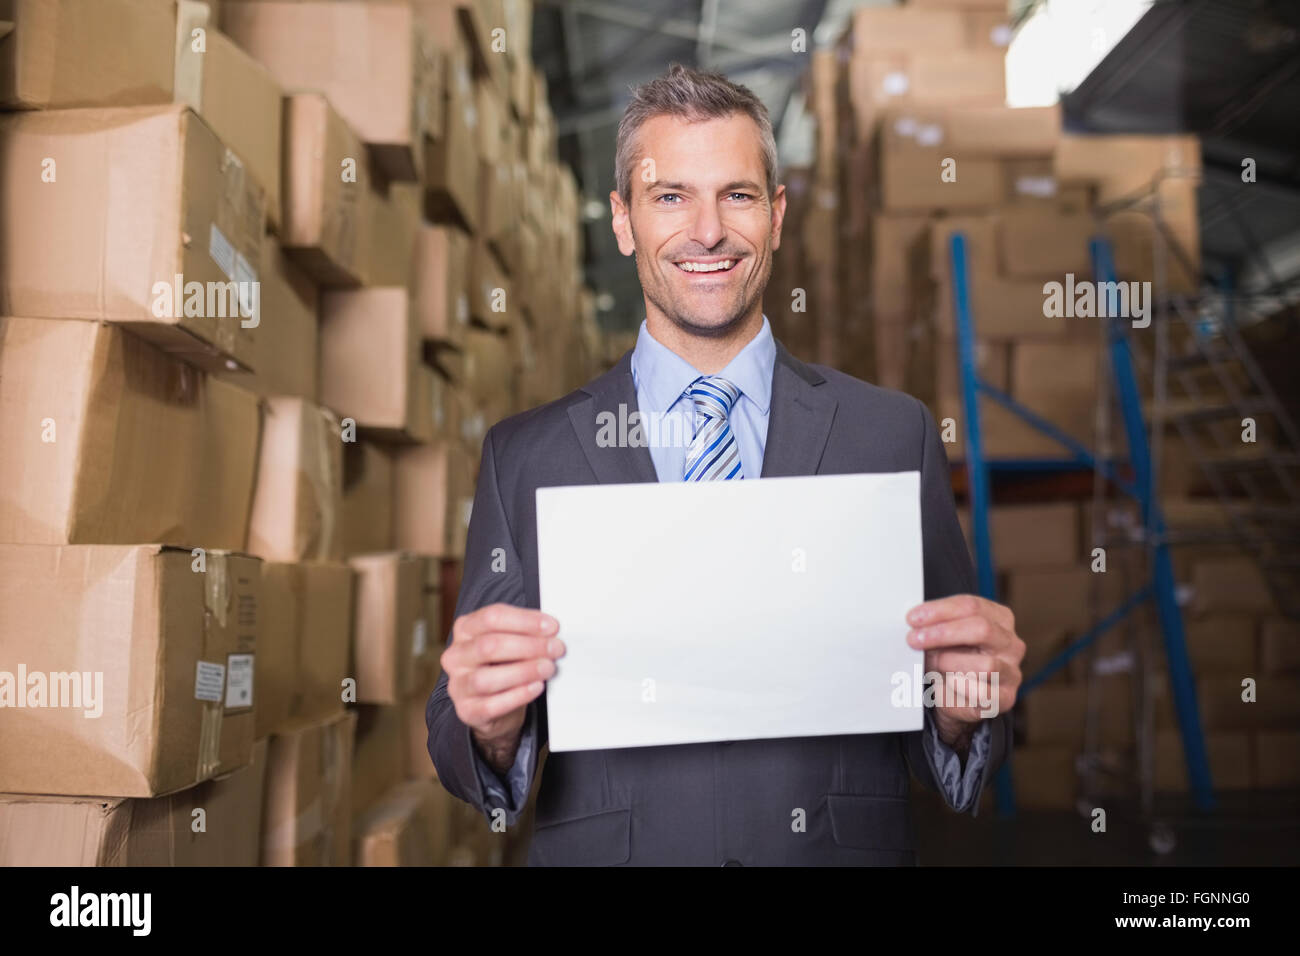 Manager holding blank board in warehouse Photo Stock